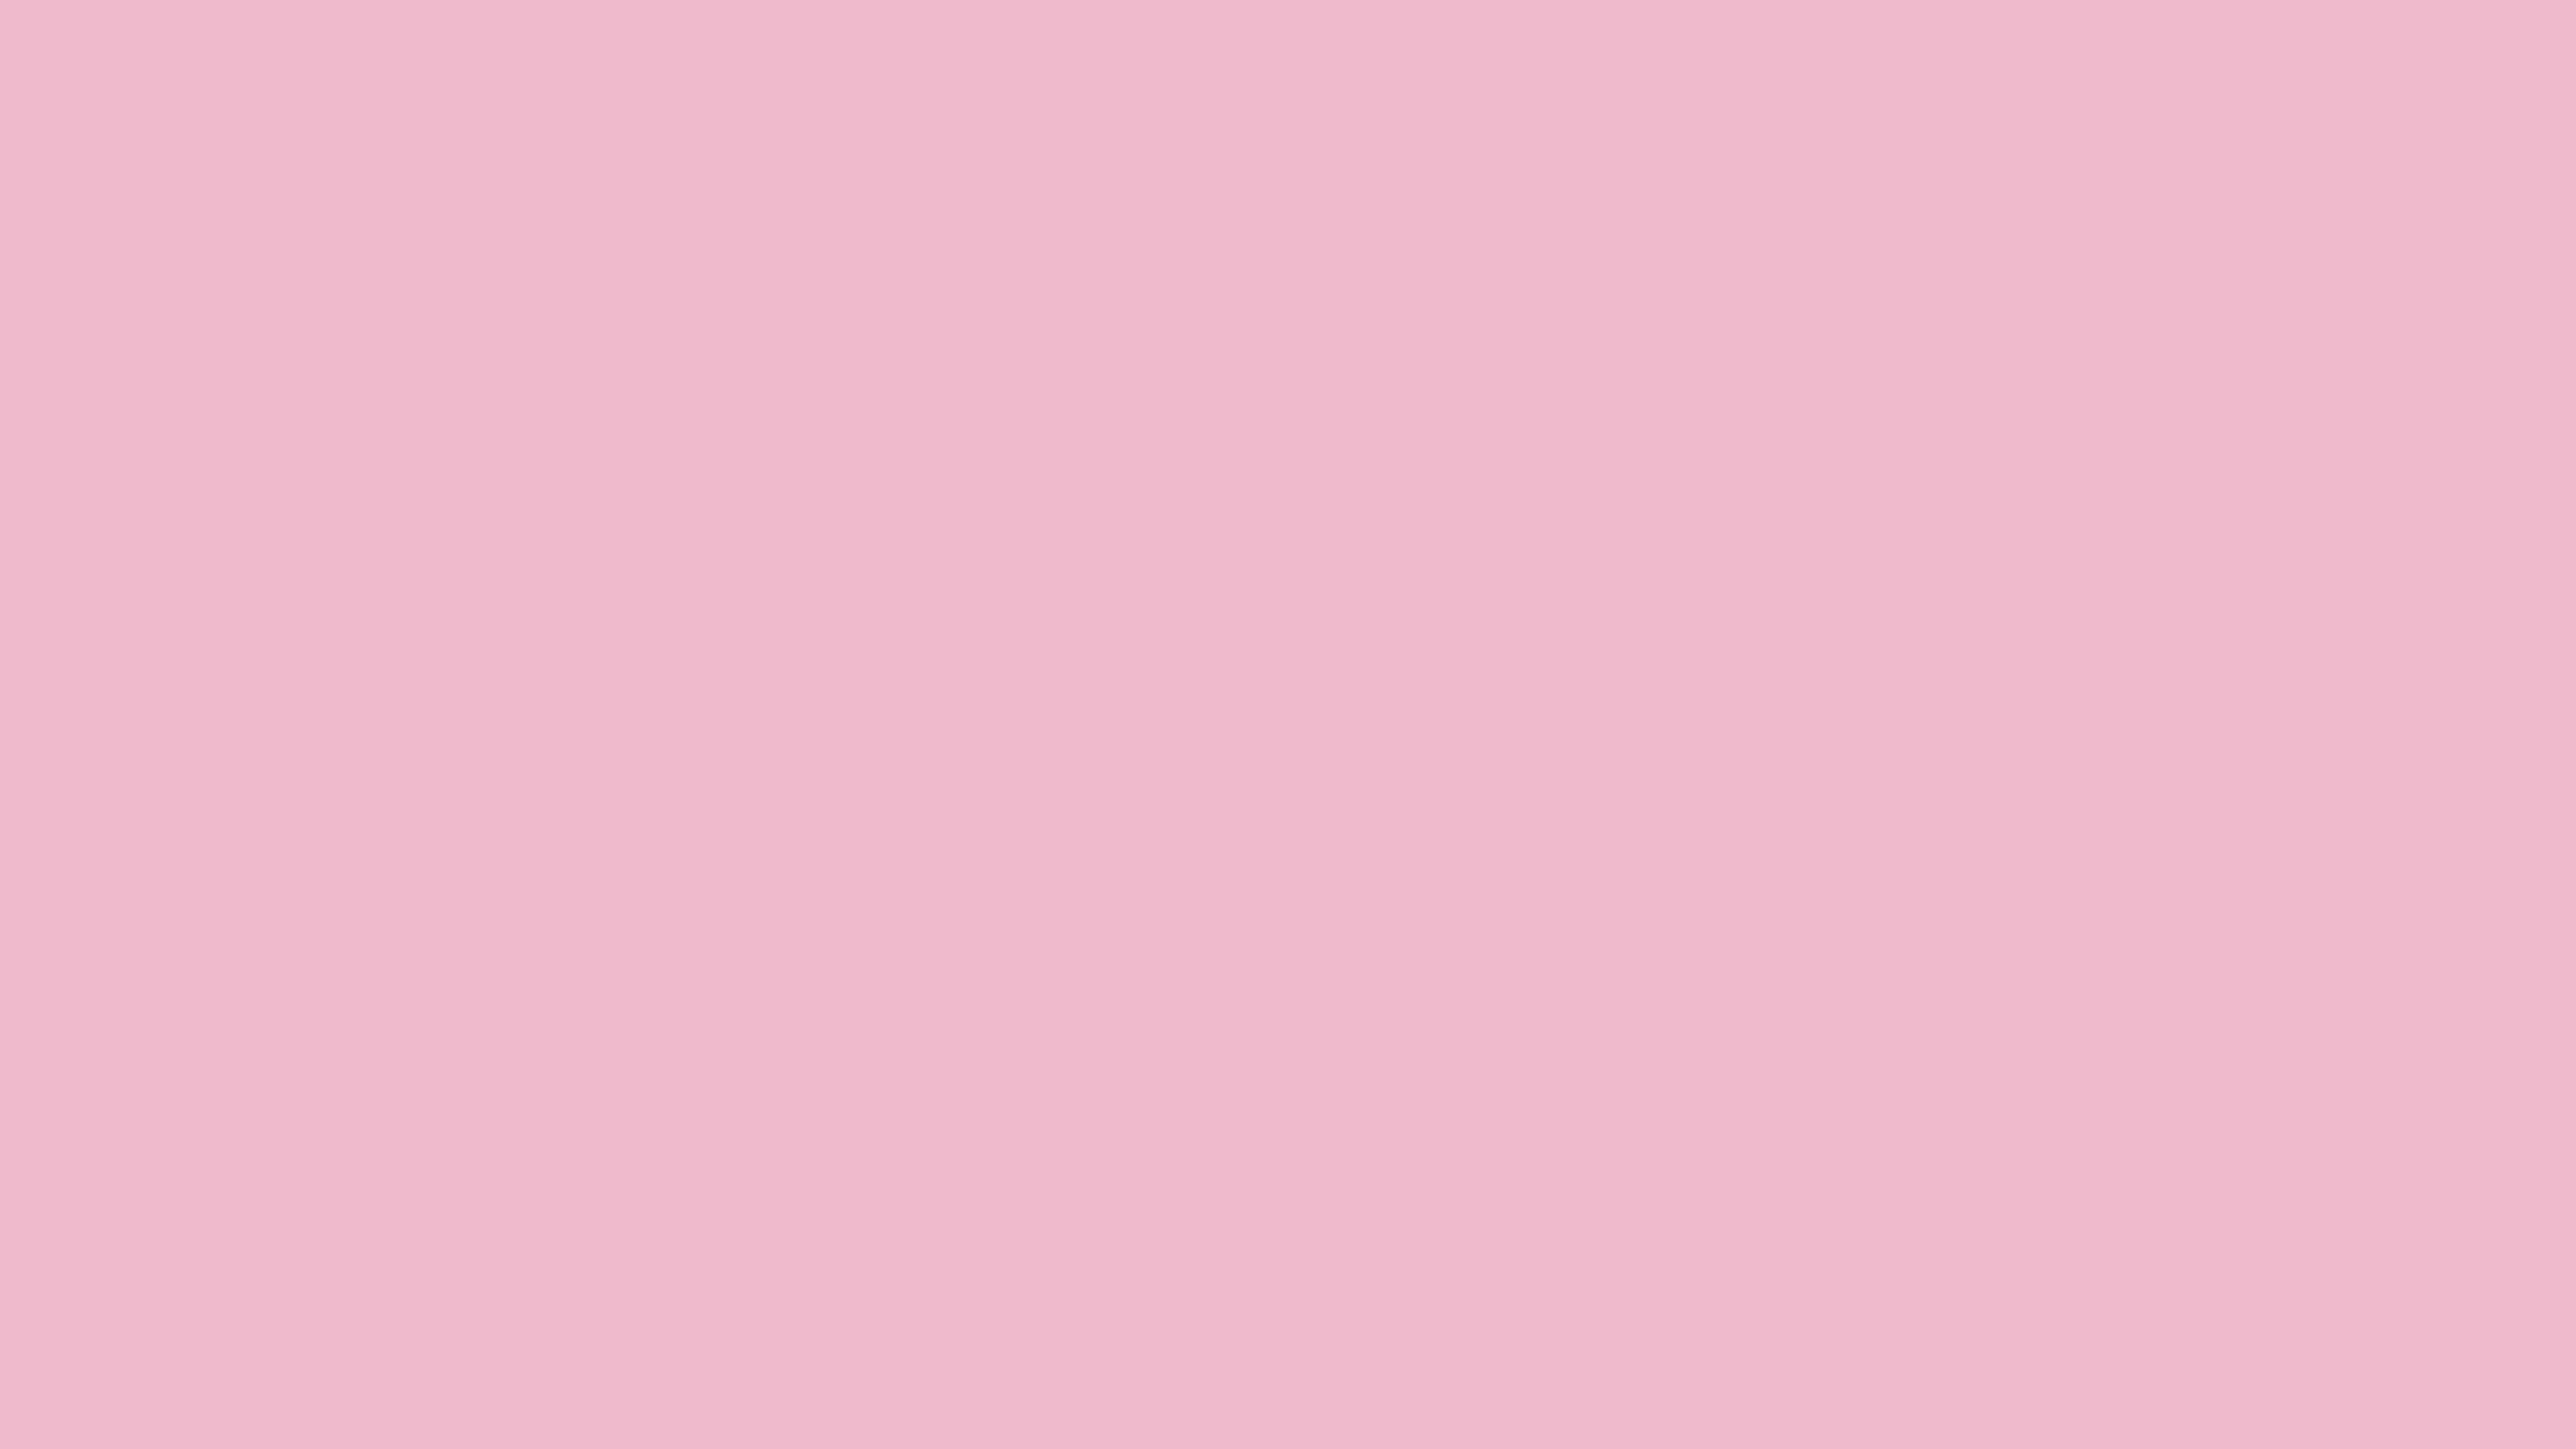 5120x2880 Cameo Pink Solid Color Background